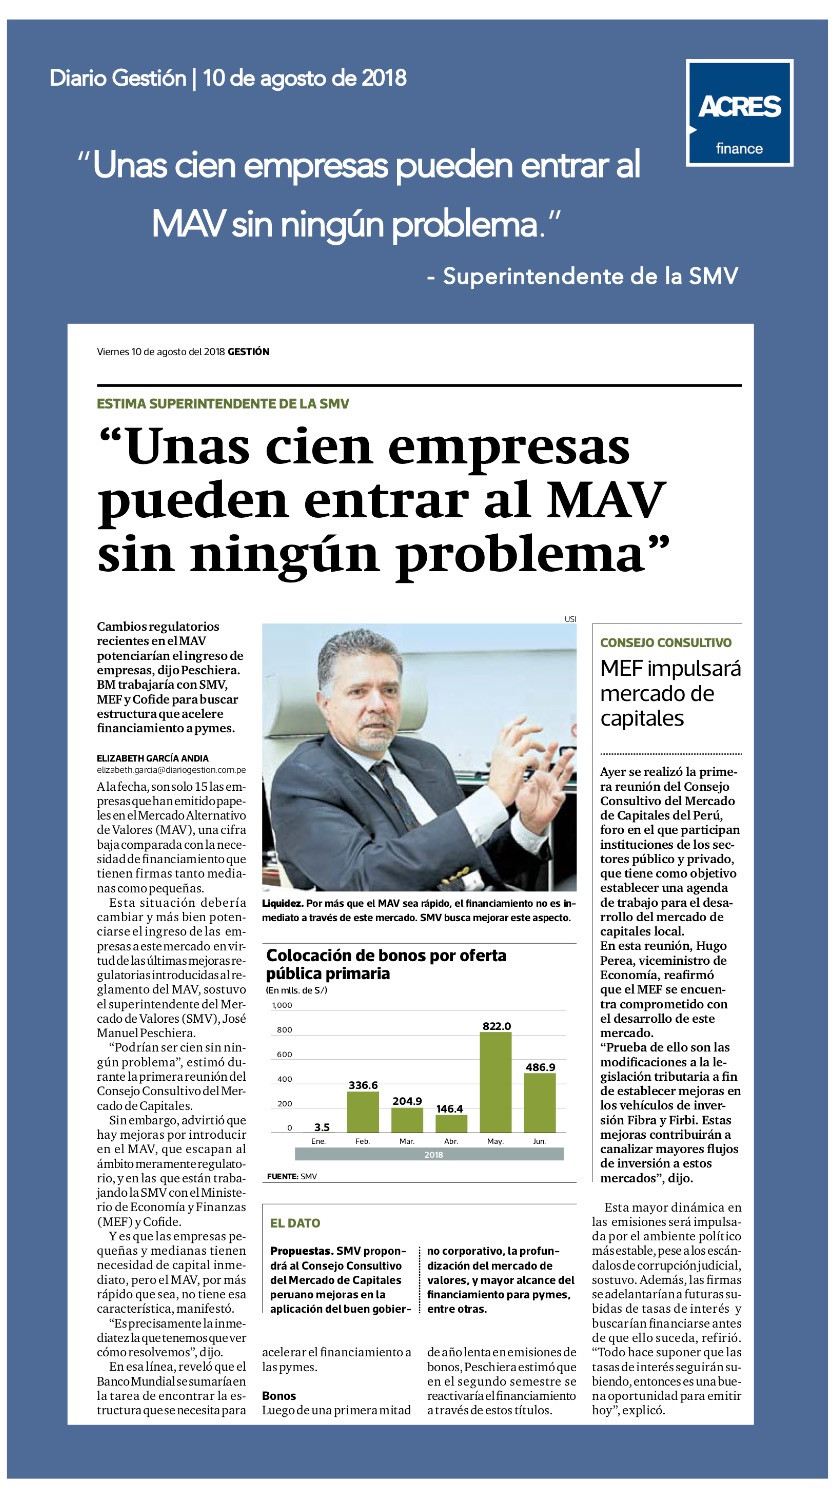 Diario Gestion | Financiamiento | SMV | MAV | ACRES